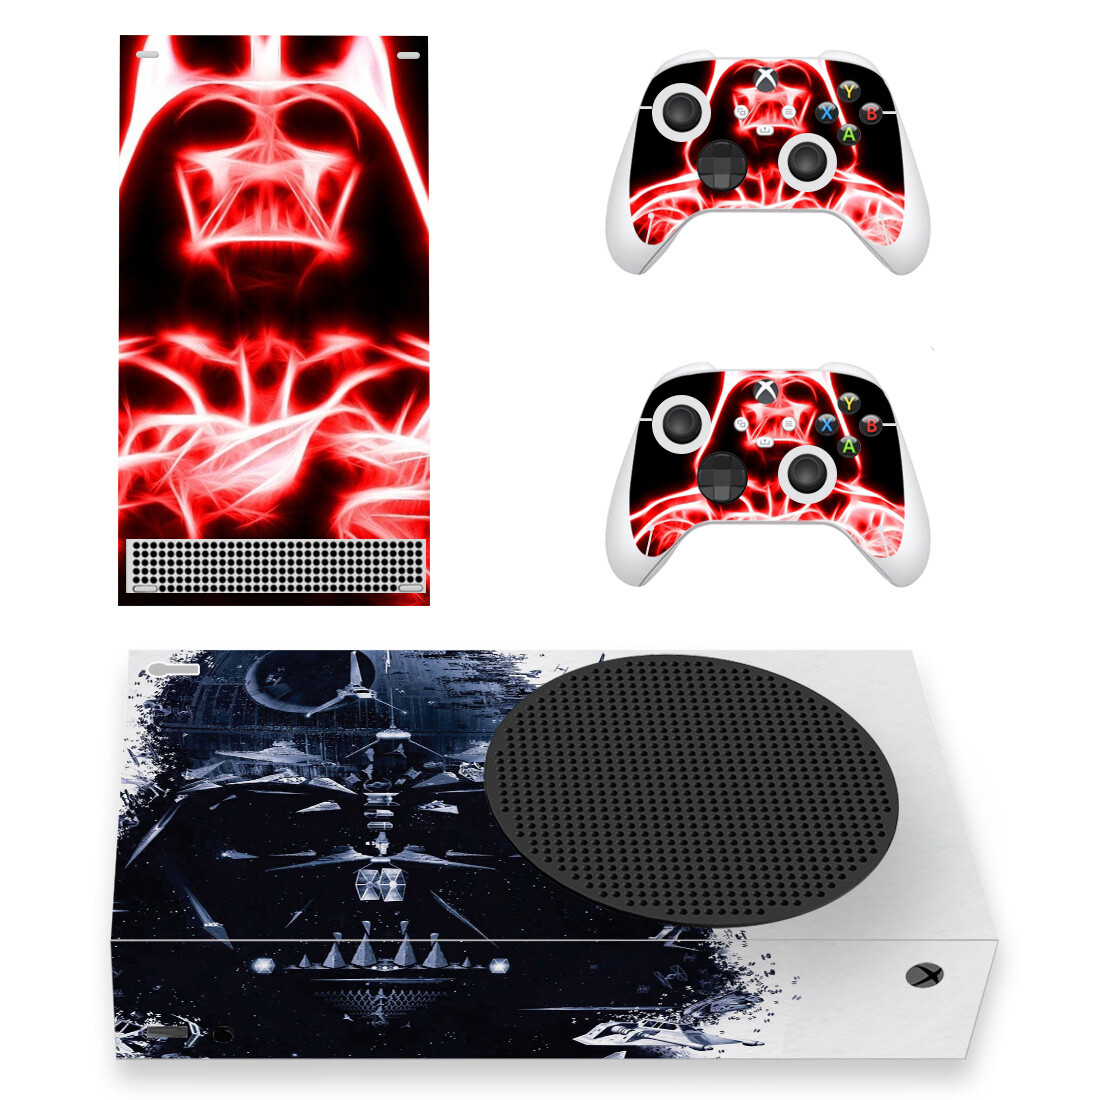 Darth Vader Skin Sticker For Xbox Series S And Controllers